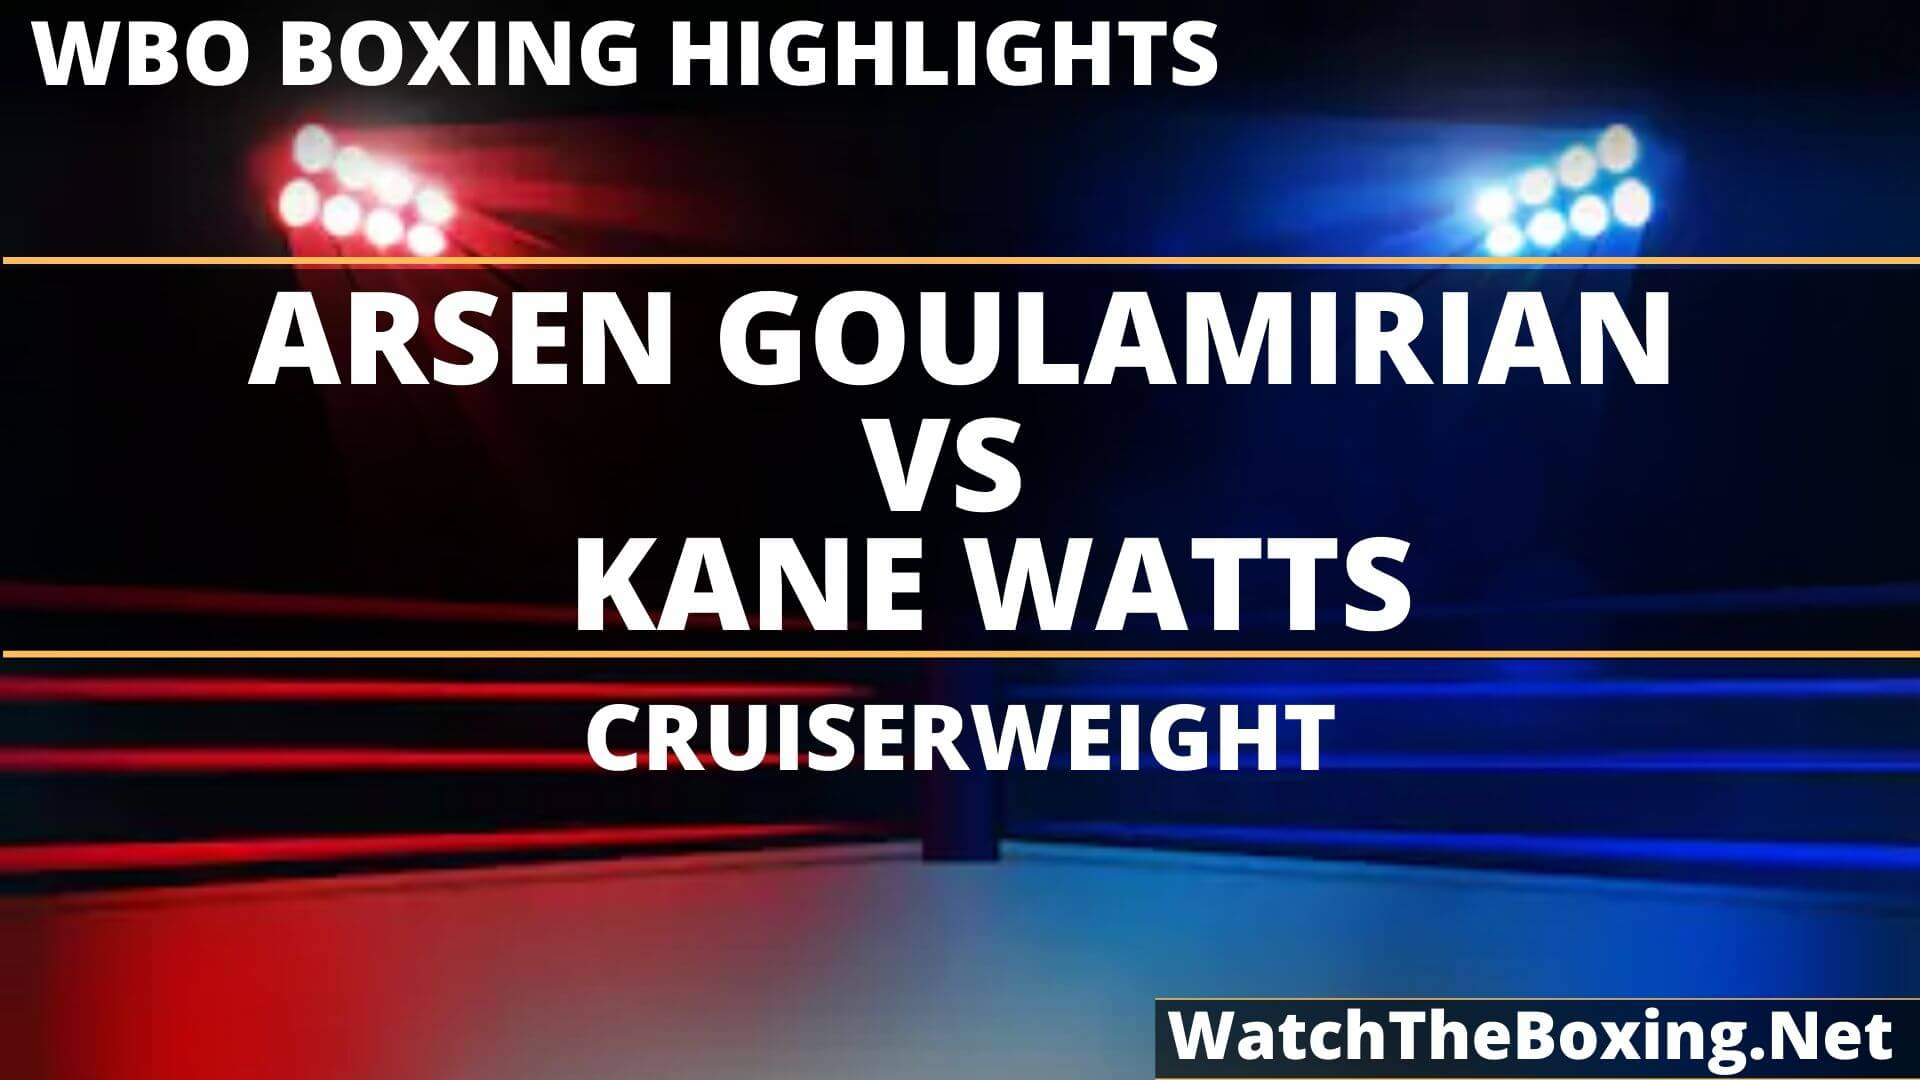 Arsen Goulamirian Vs Kane Watts Highlights 2019